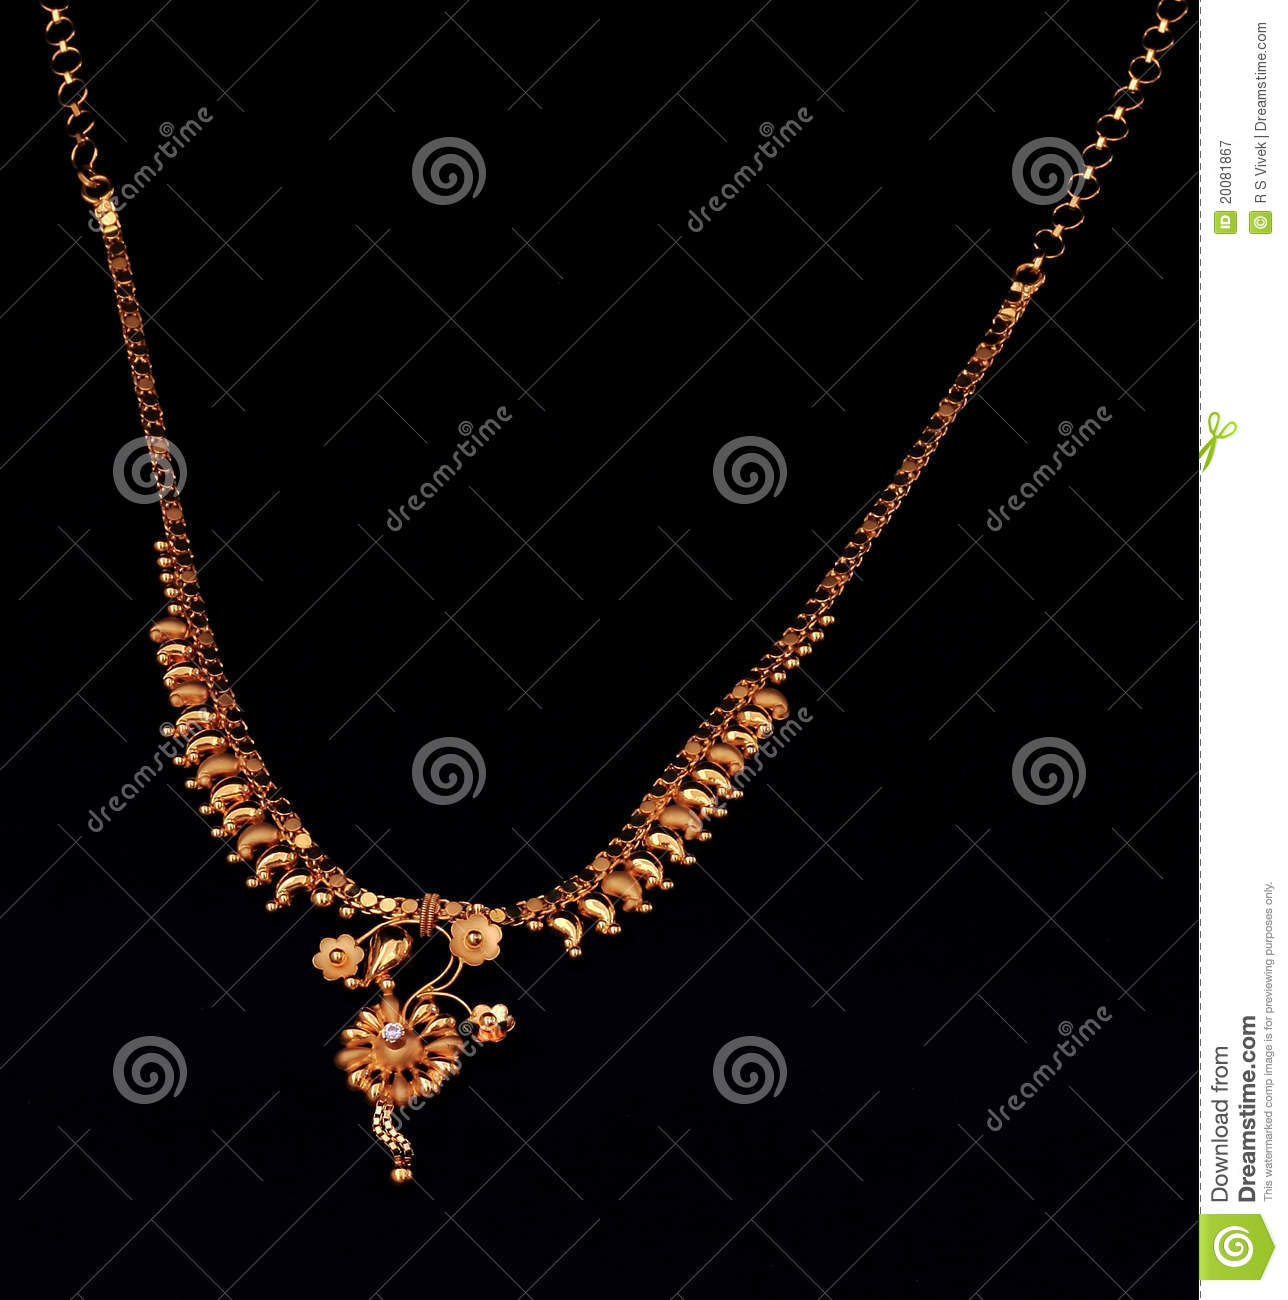 Indian Gold Necklace Stock Images - Download 1,901 Photos